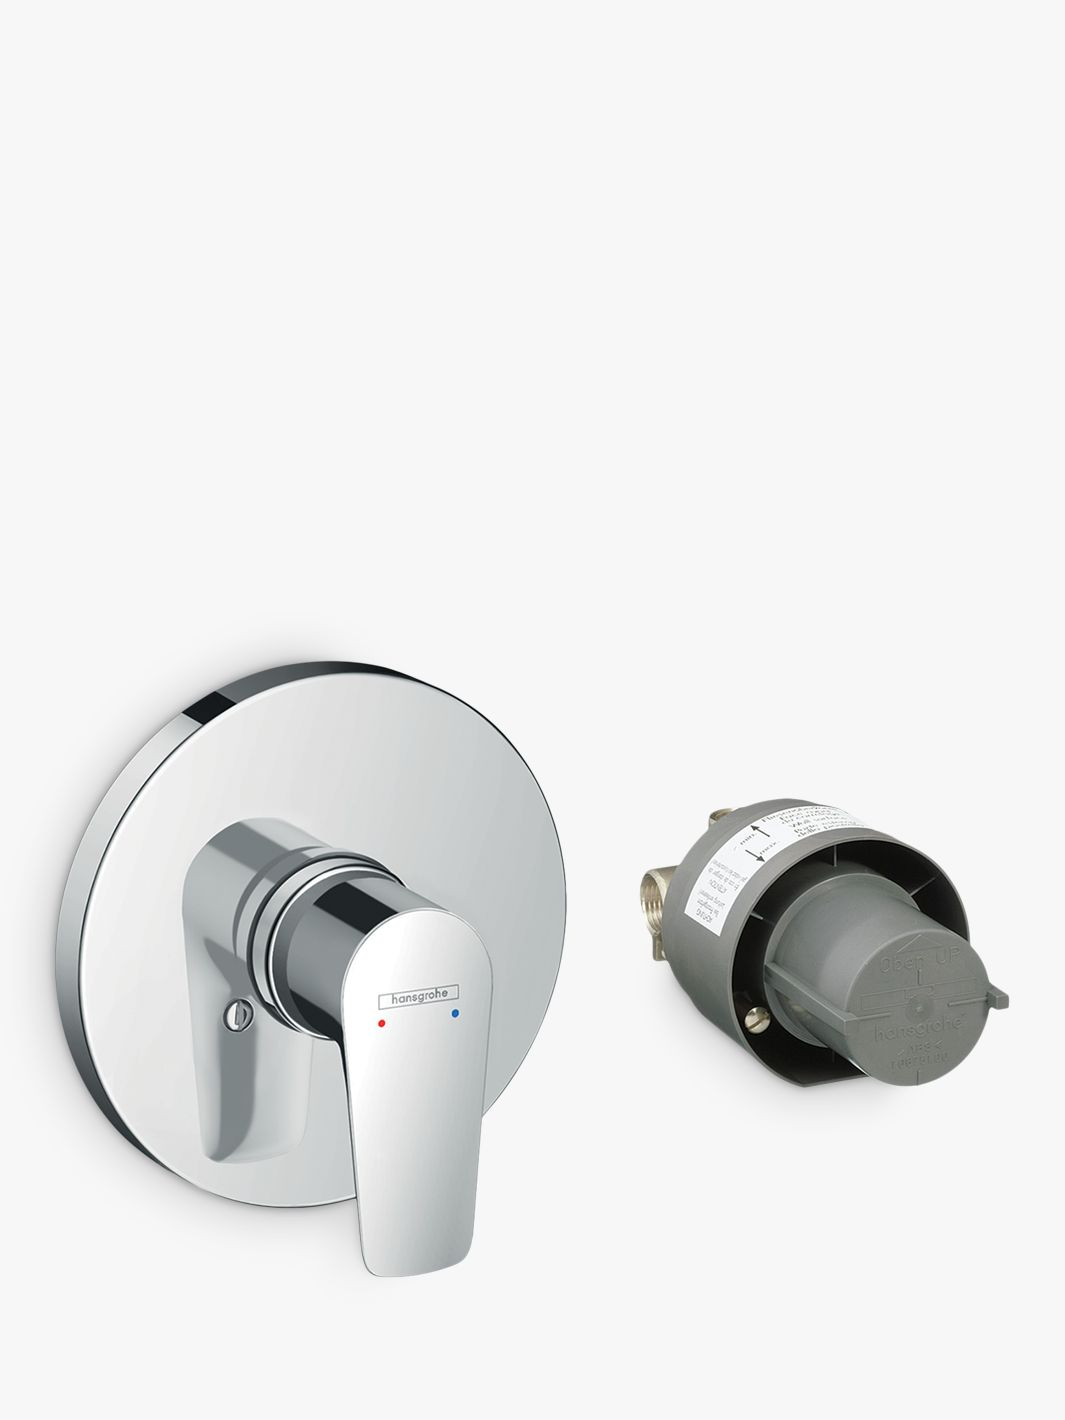 Hansgrohe Hansgrohe Talis E Single Lever Concealed Installation Round Bath/Shower Mixer Tap with Basic Set, Chrome